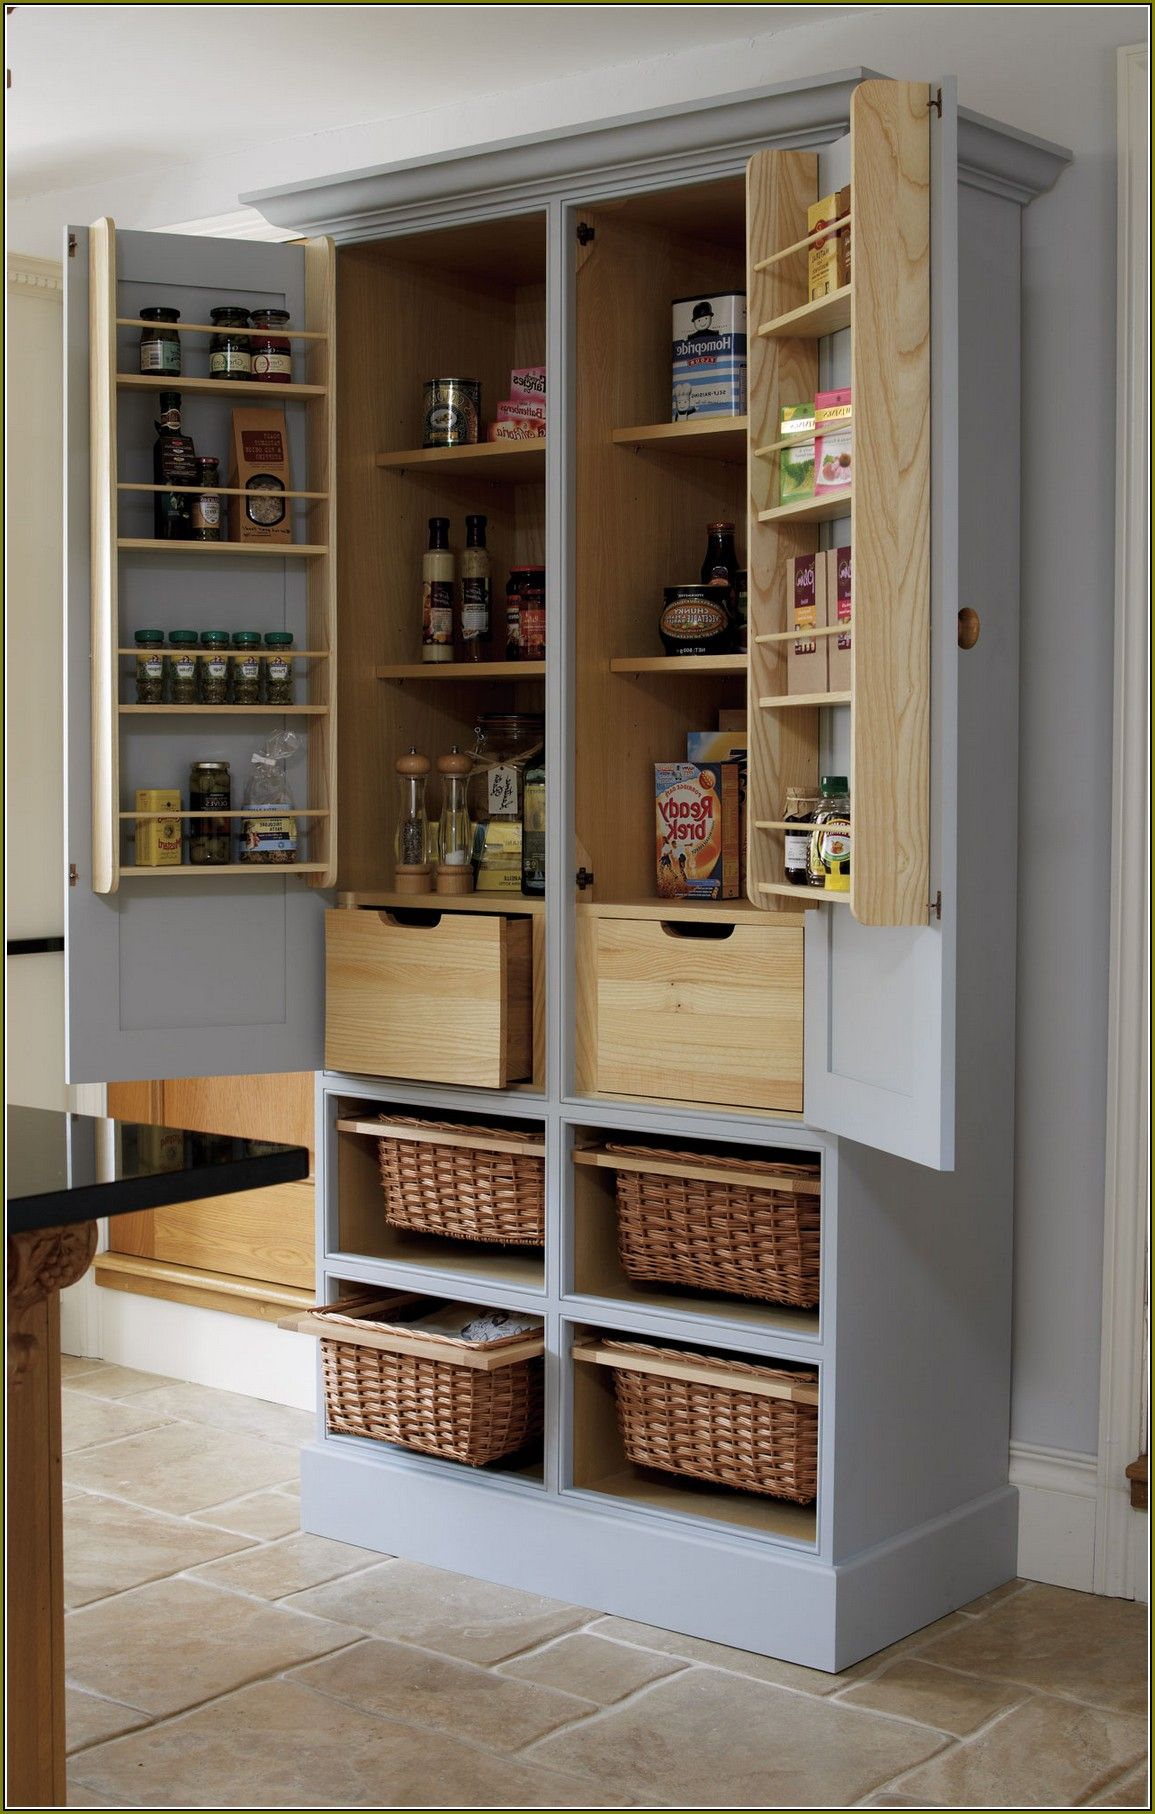 kitchen storage walmart metal of size large ikea freestanding cabinets full racks pantry furniture creative cabinet